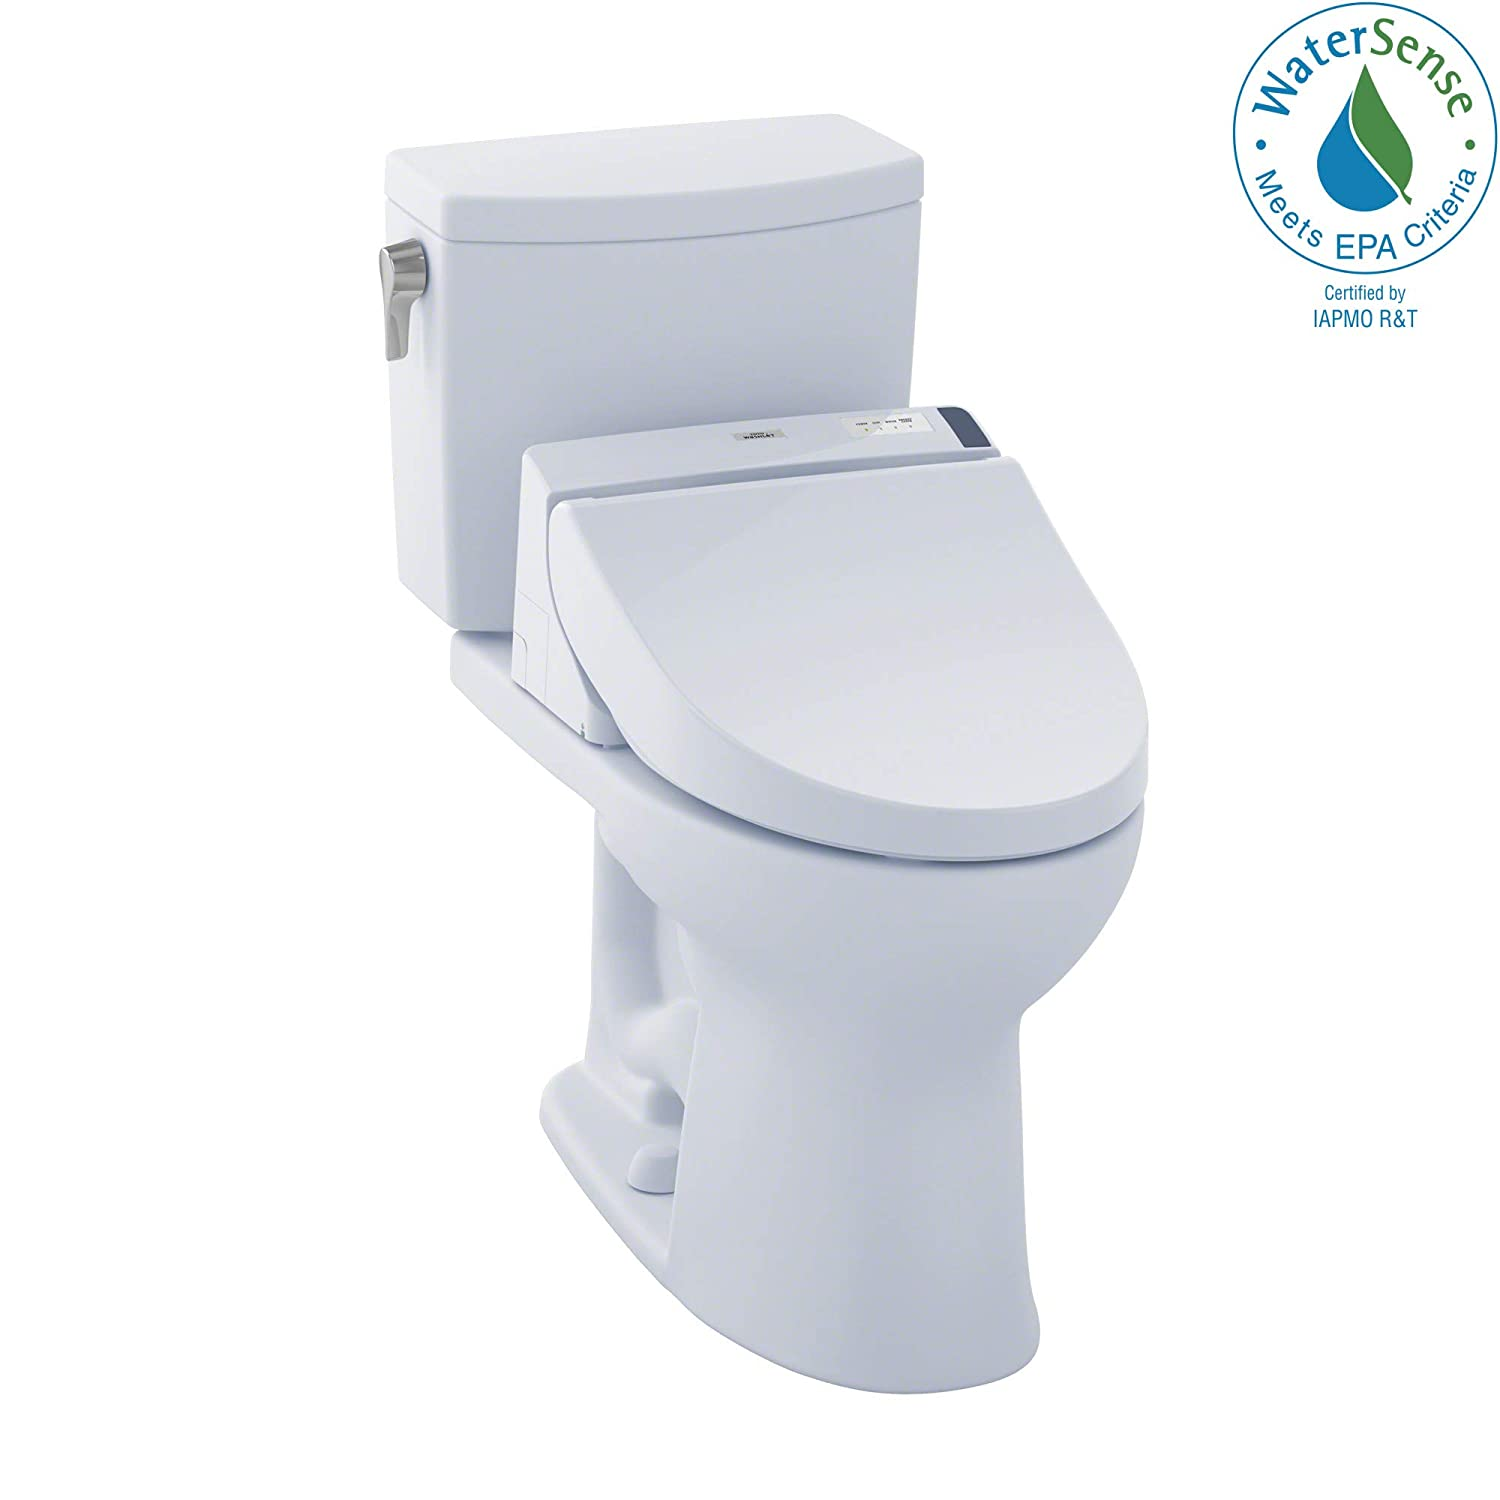 TOTO MW4542044CUFG#01 C200 WASHLET+ Kit, Drake II 1G Elongated 1.0 GPF